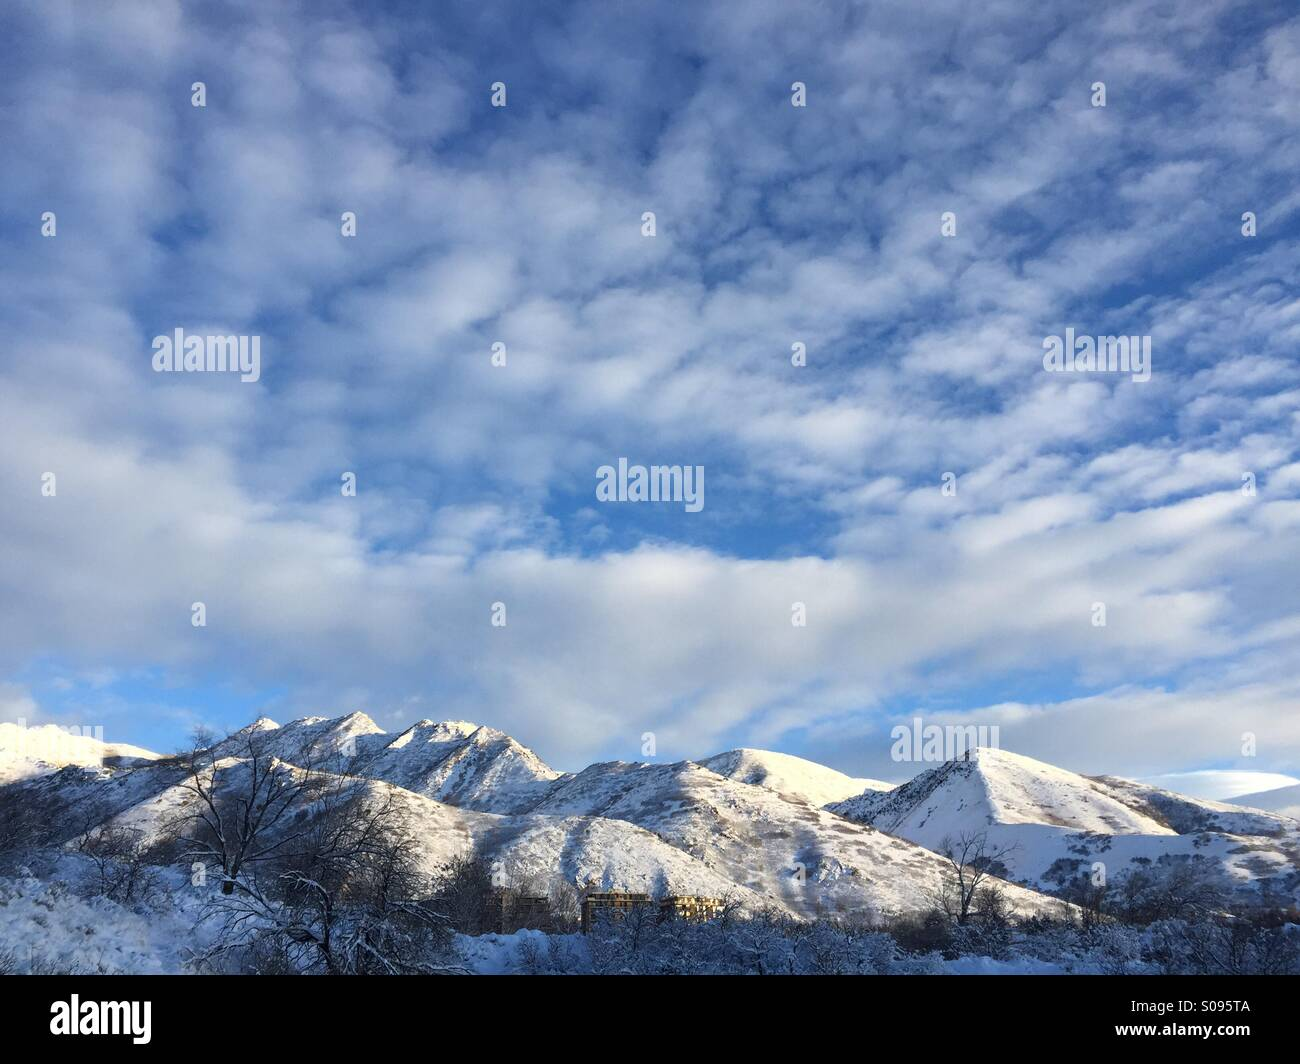 Whispy clouds float over the snow-covered Wasatch Front in Salt Lake City, UT. - Stock Image